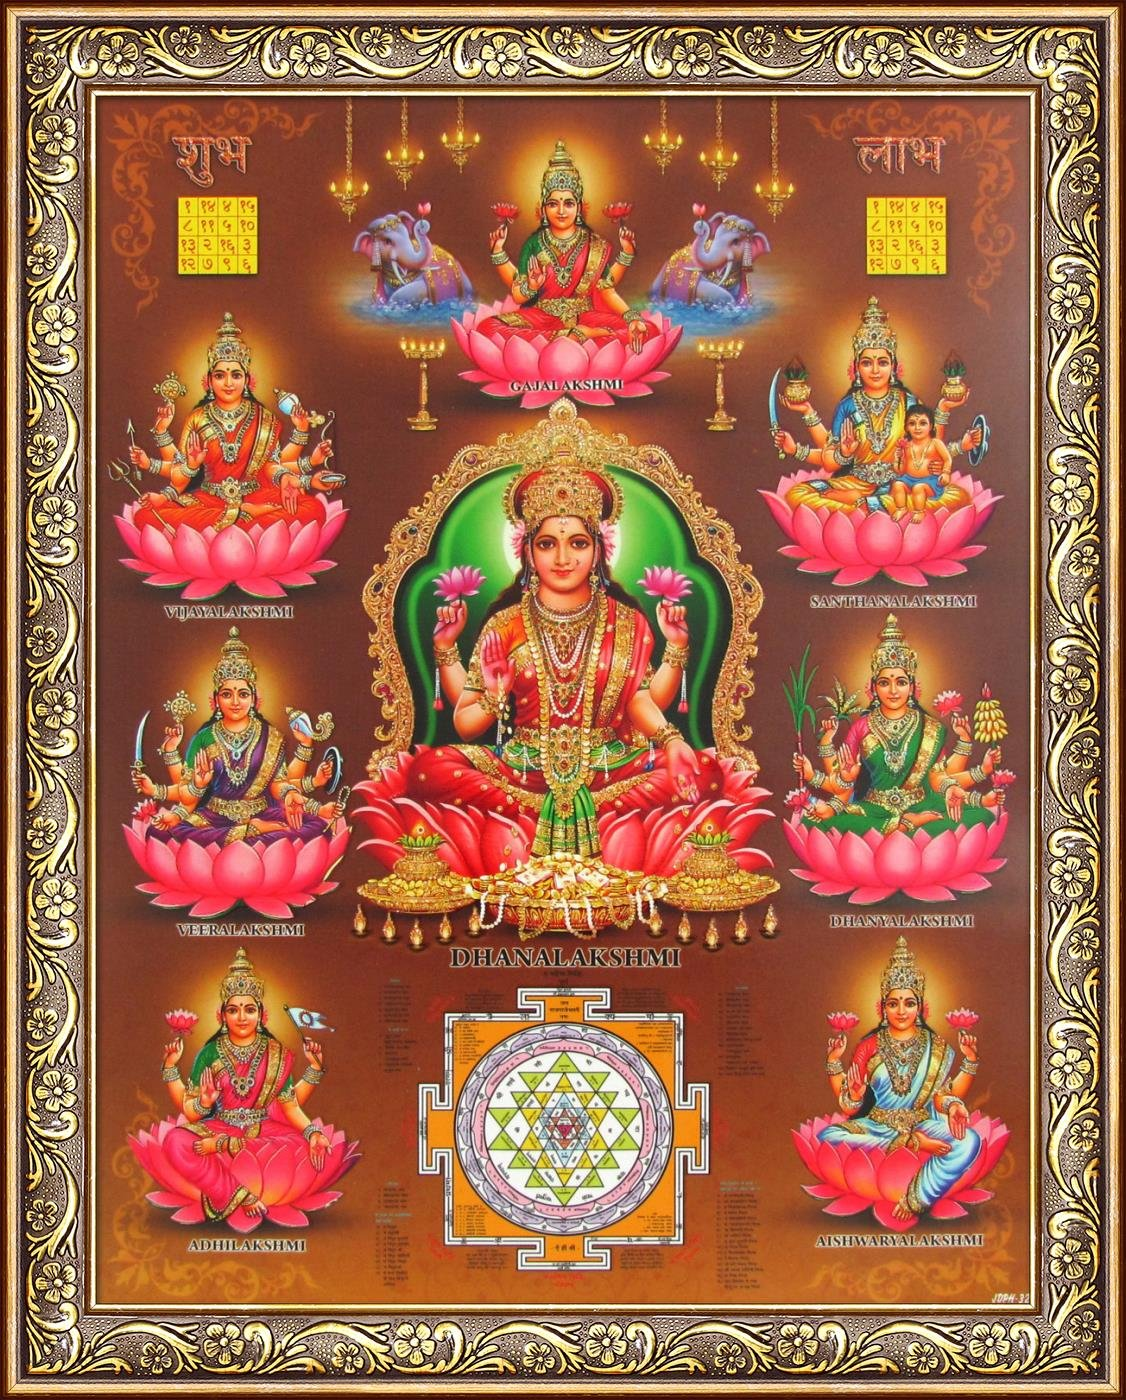 Avercart Goddess Lakshmi with 8 Forms Poster 8.5x11 inch Framed (with Frame  Size: 10.5x13 inch): Amazon.in: Home & Kitchen